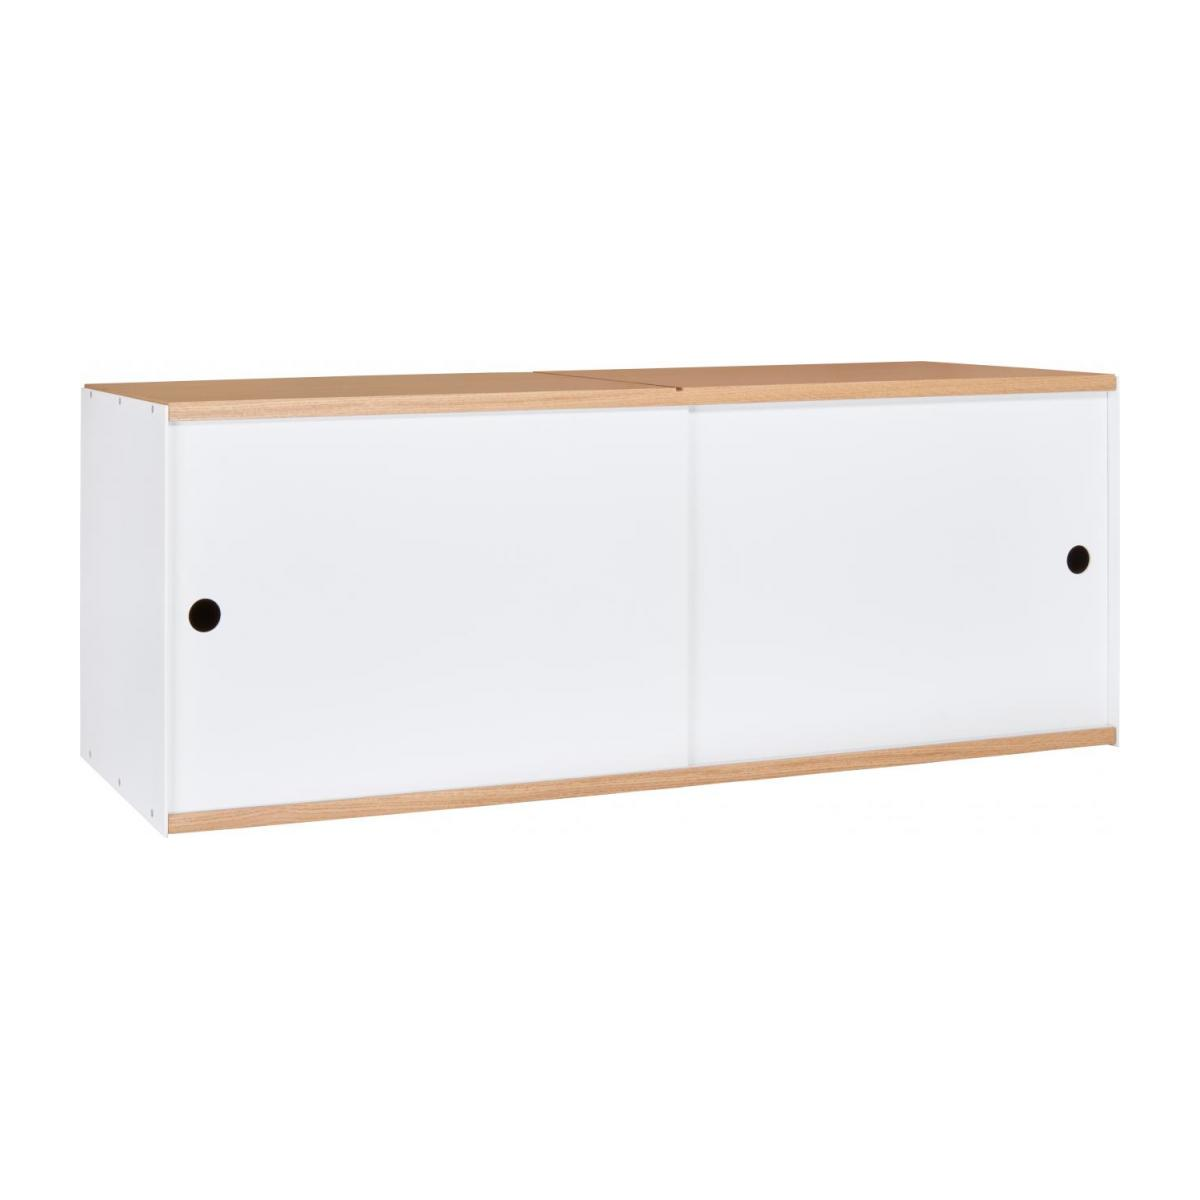 White and oak big closed modular storage rack - Design by Kasch Kasch n°1